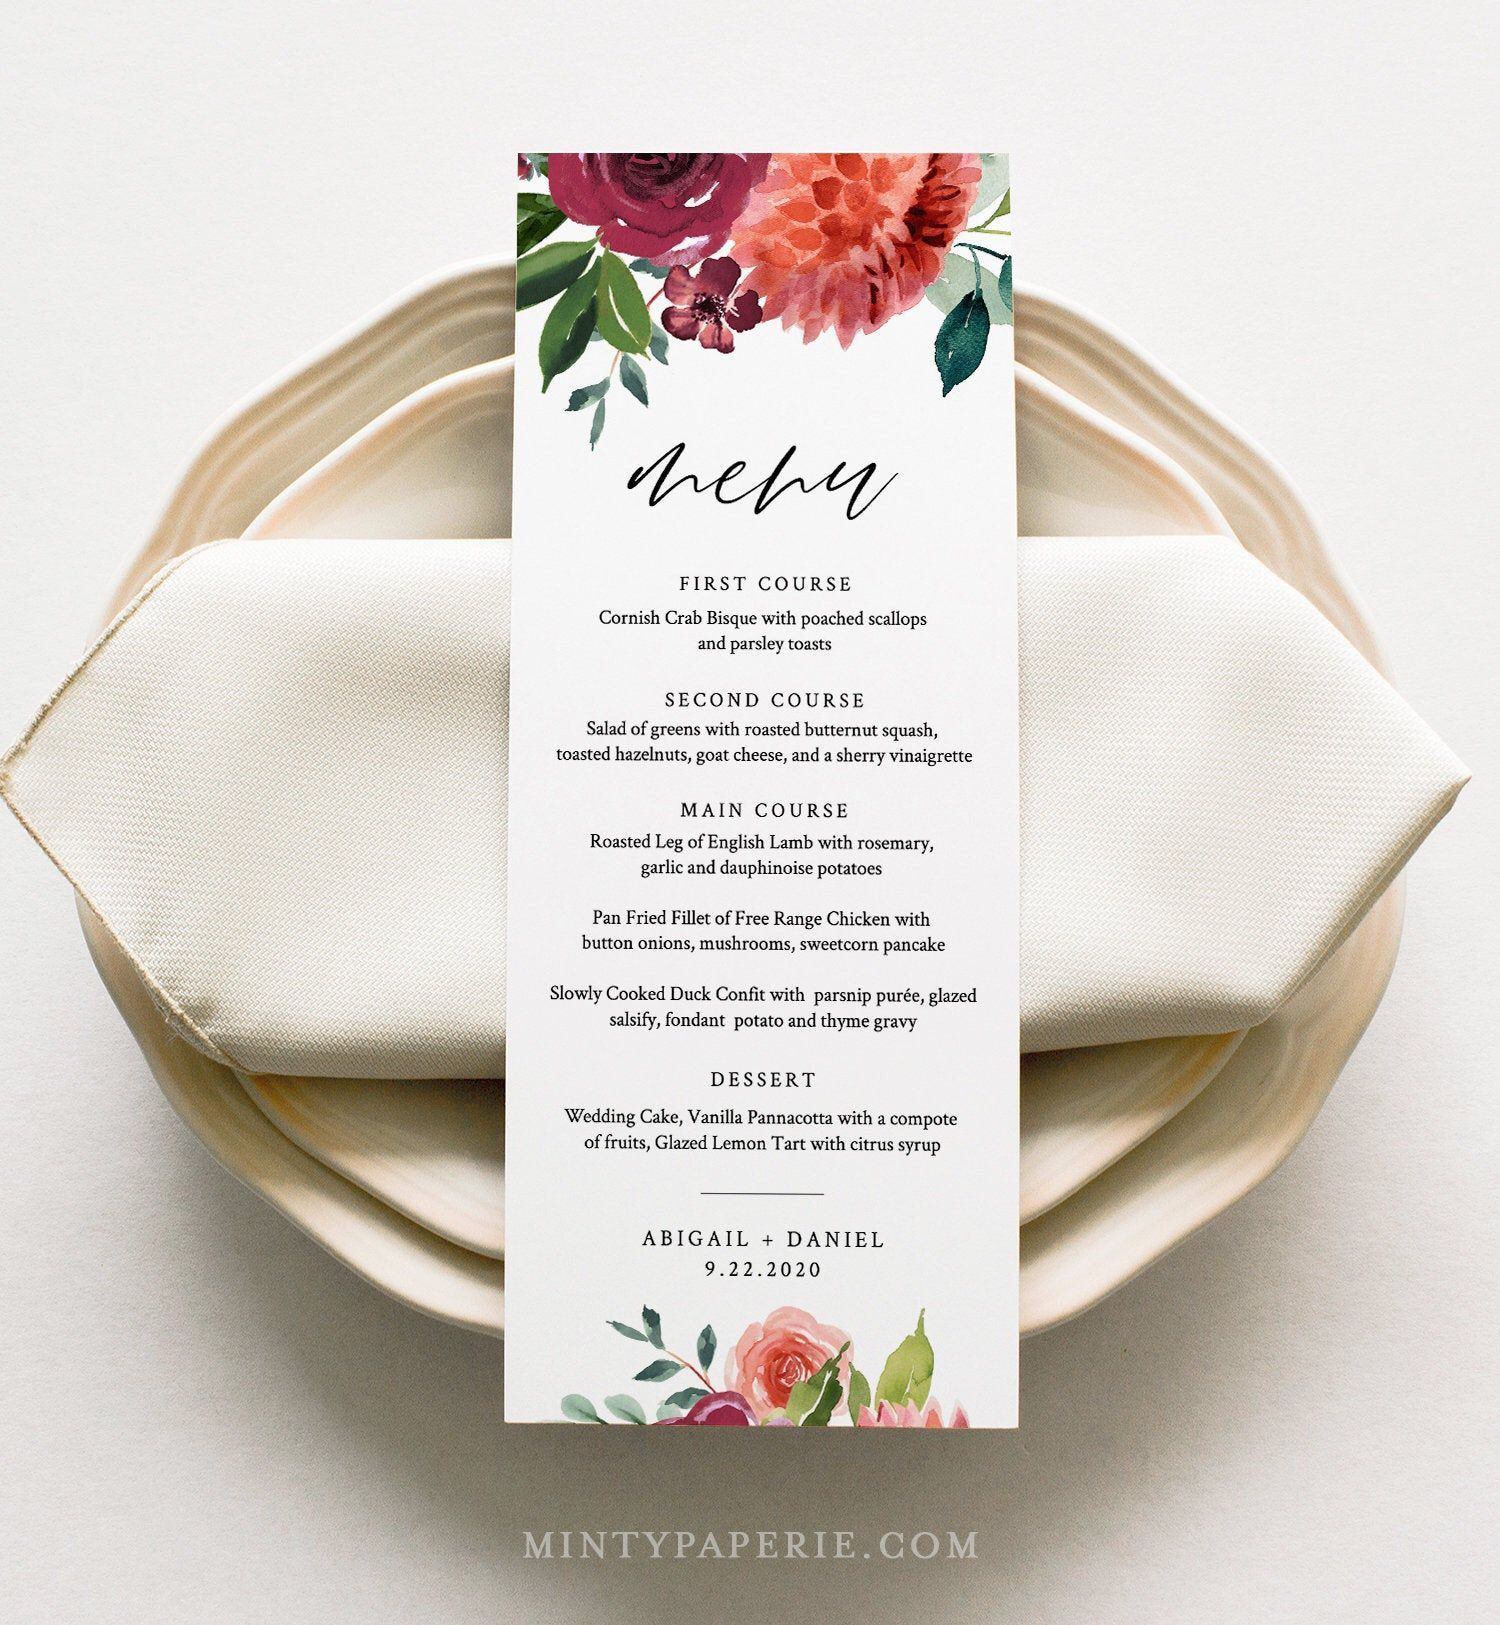 Wedding Menu Card Template, Dinner Menu, Summer Orange Floral Menu Card Printable, 100% Editable Text, Instant Download, Templett #002-147WM #weddingmenuideas *** ENJOY 60% OFF WHEN YOU ORDER 3 OR MORE ITEMS. Discount applied automatically at checkout.*** This listing is an